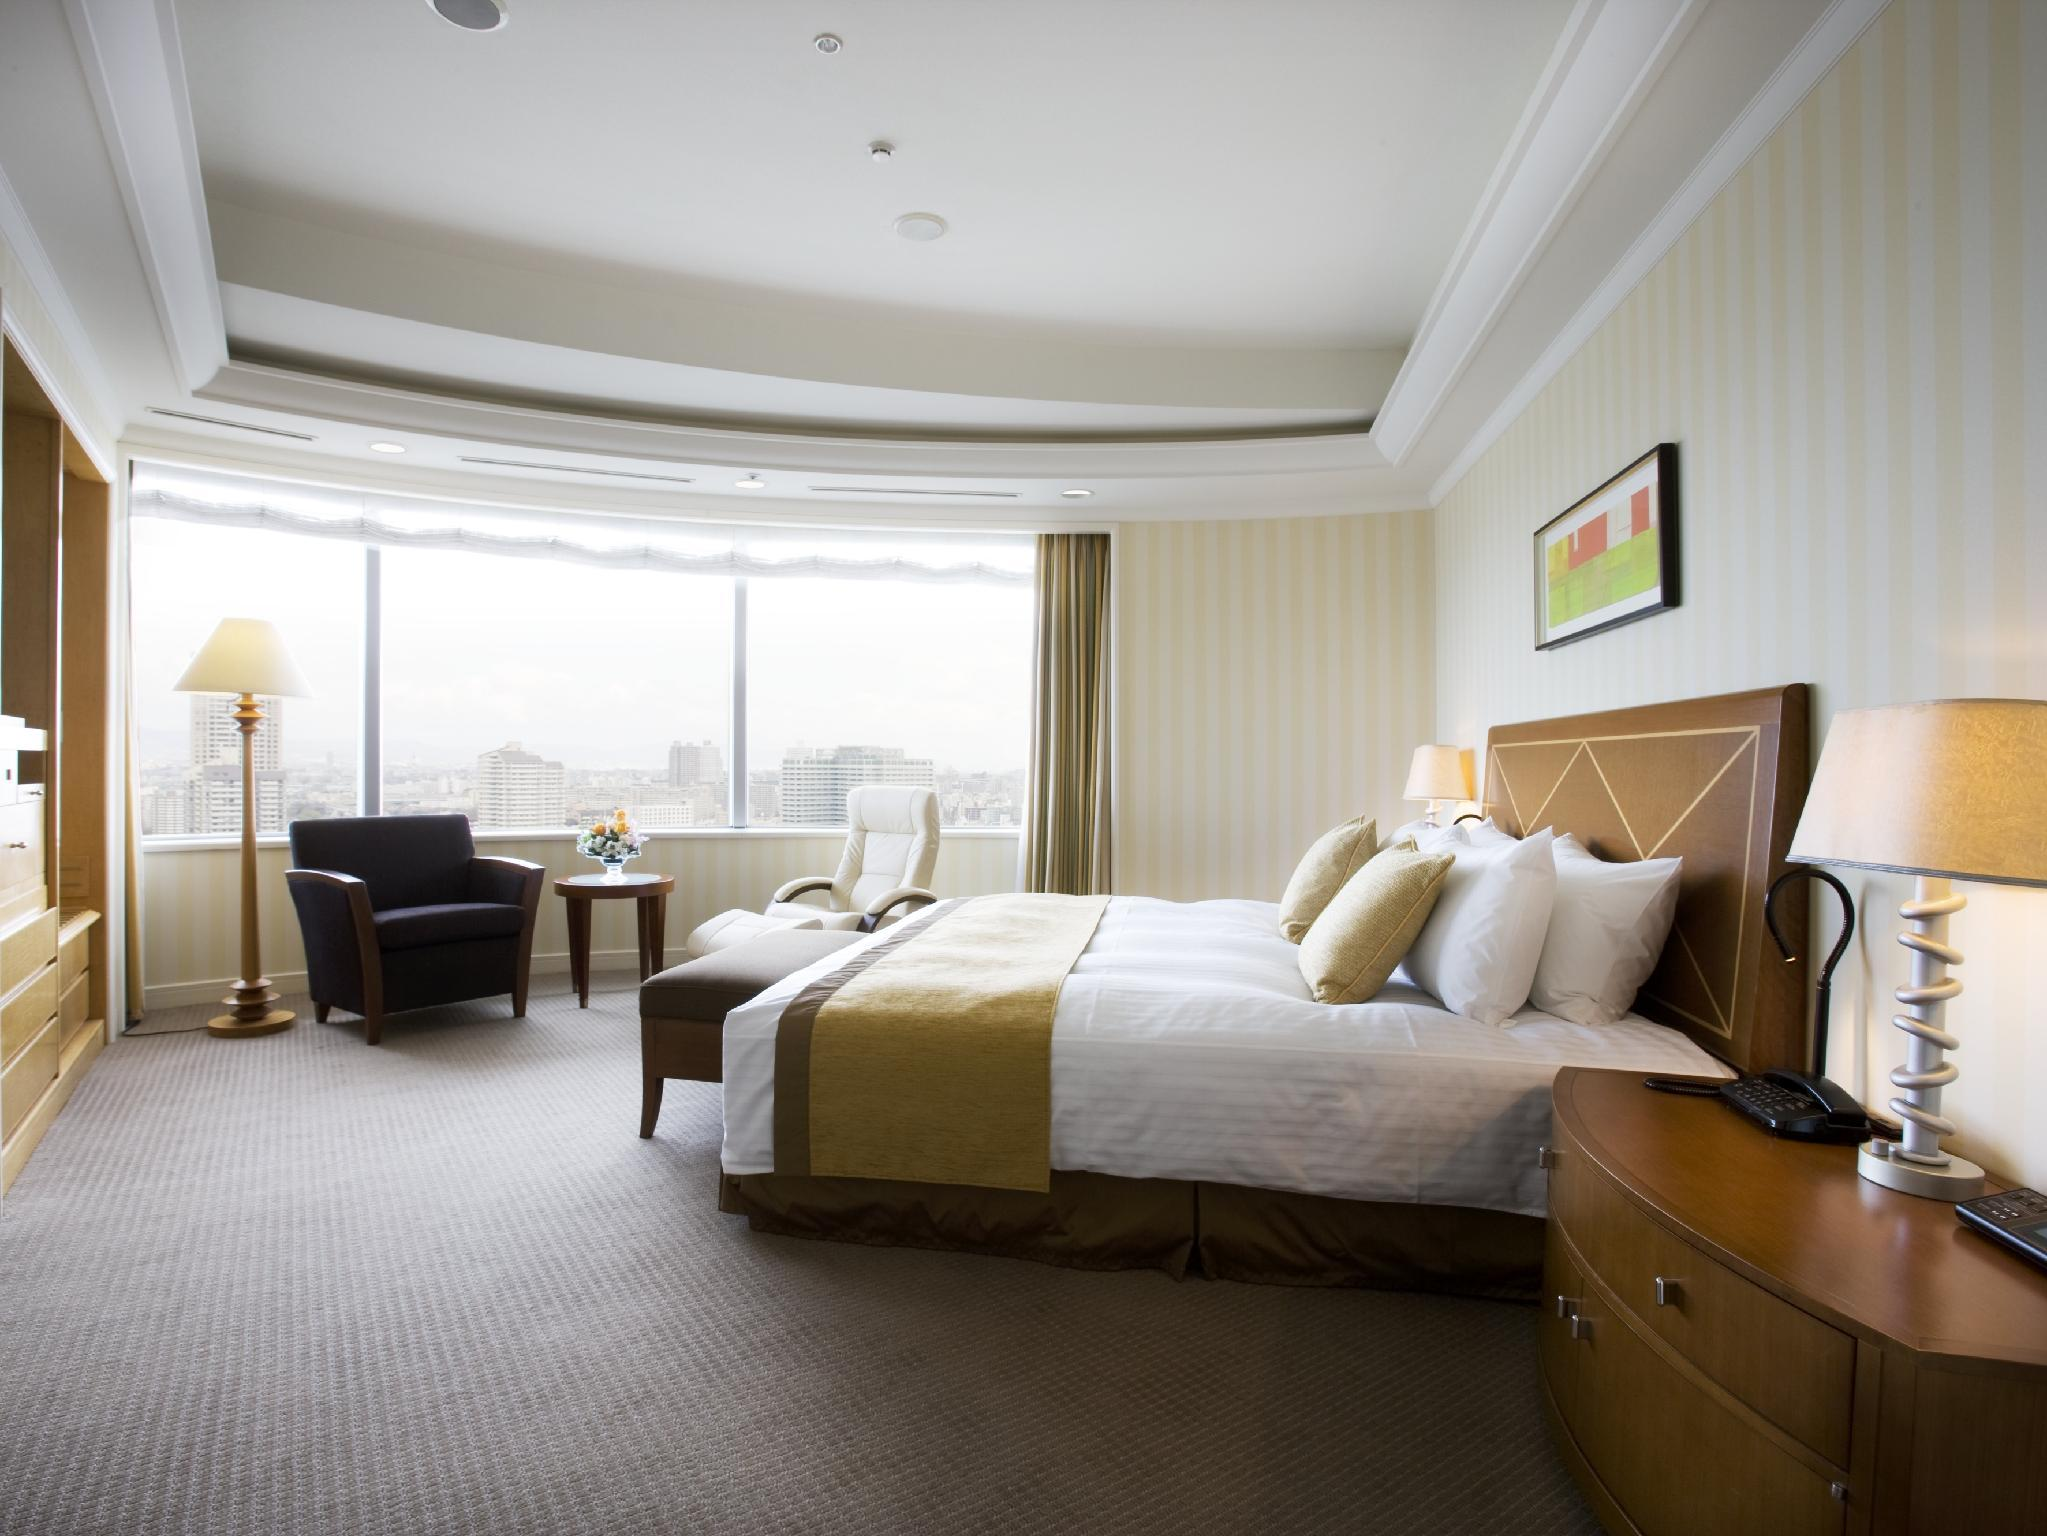 Park Suite Pemandangan Sungai dengan Katil Double (River View Park Suite with Double Bed)